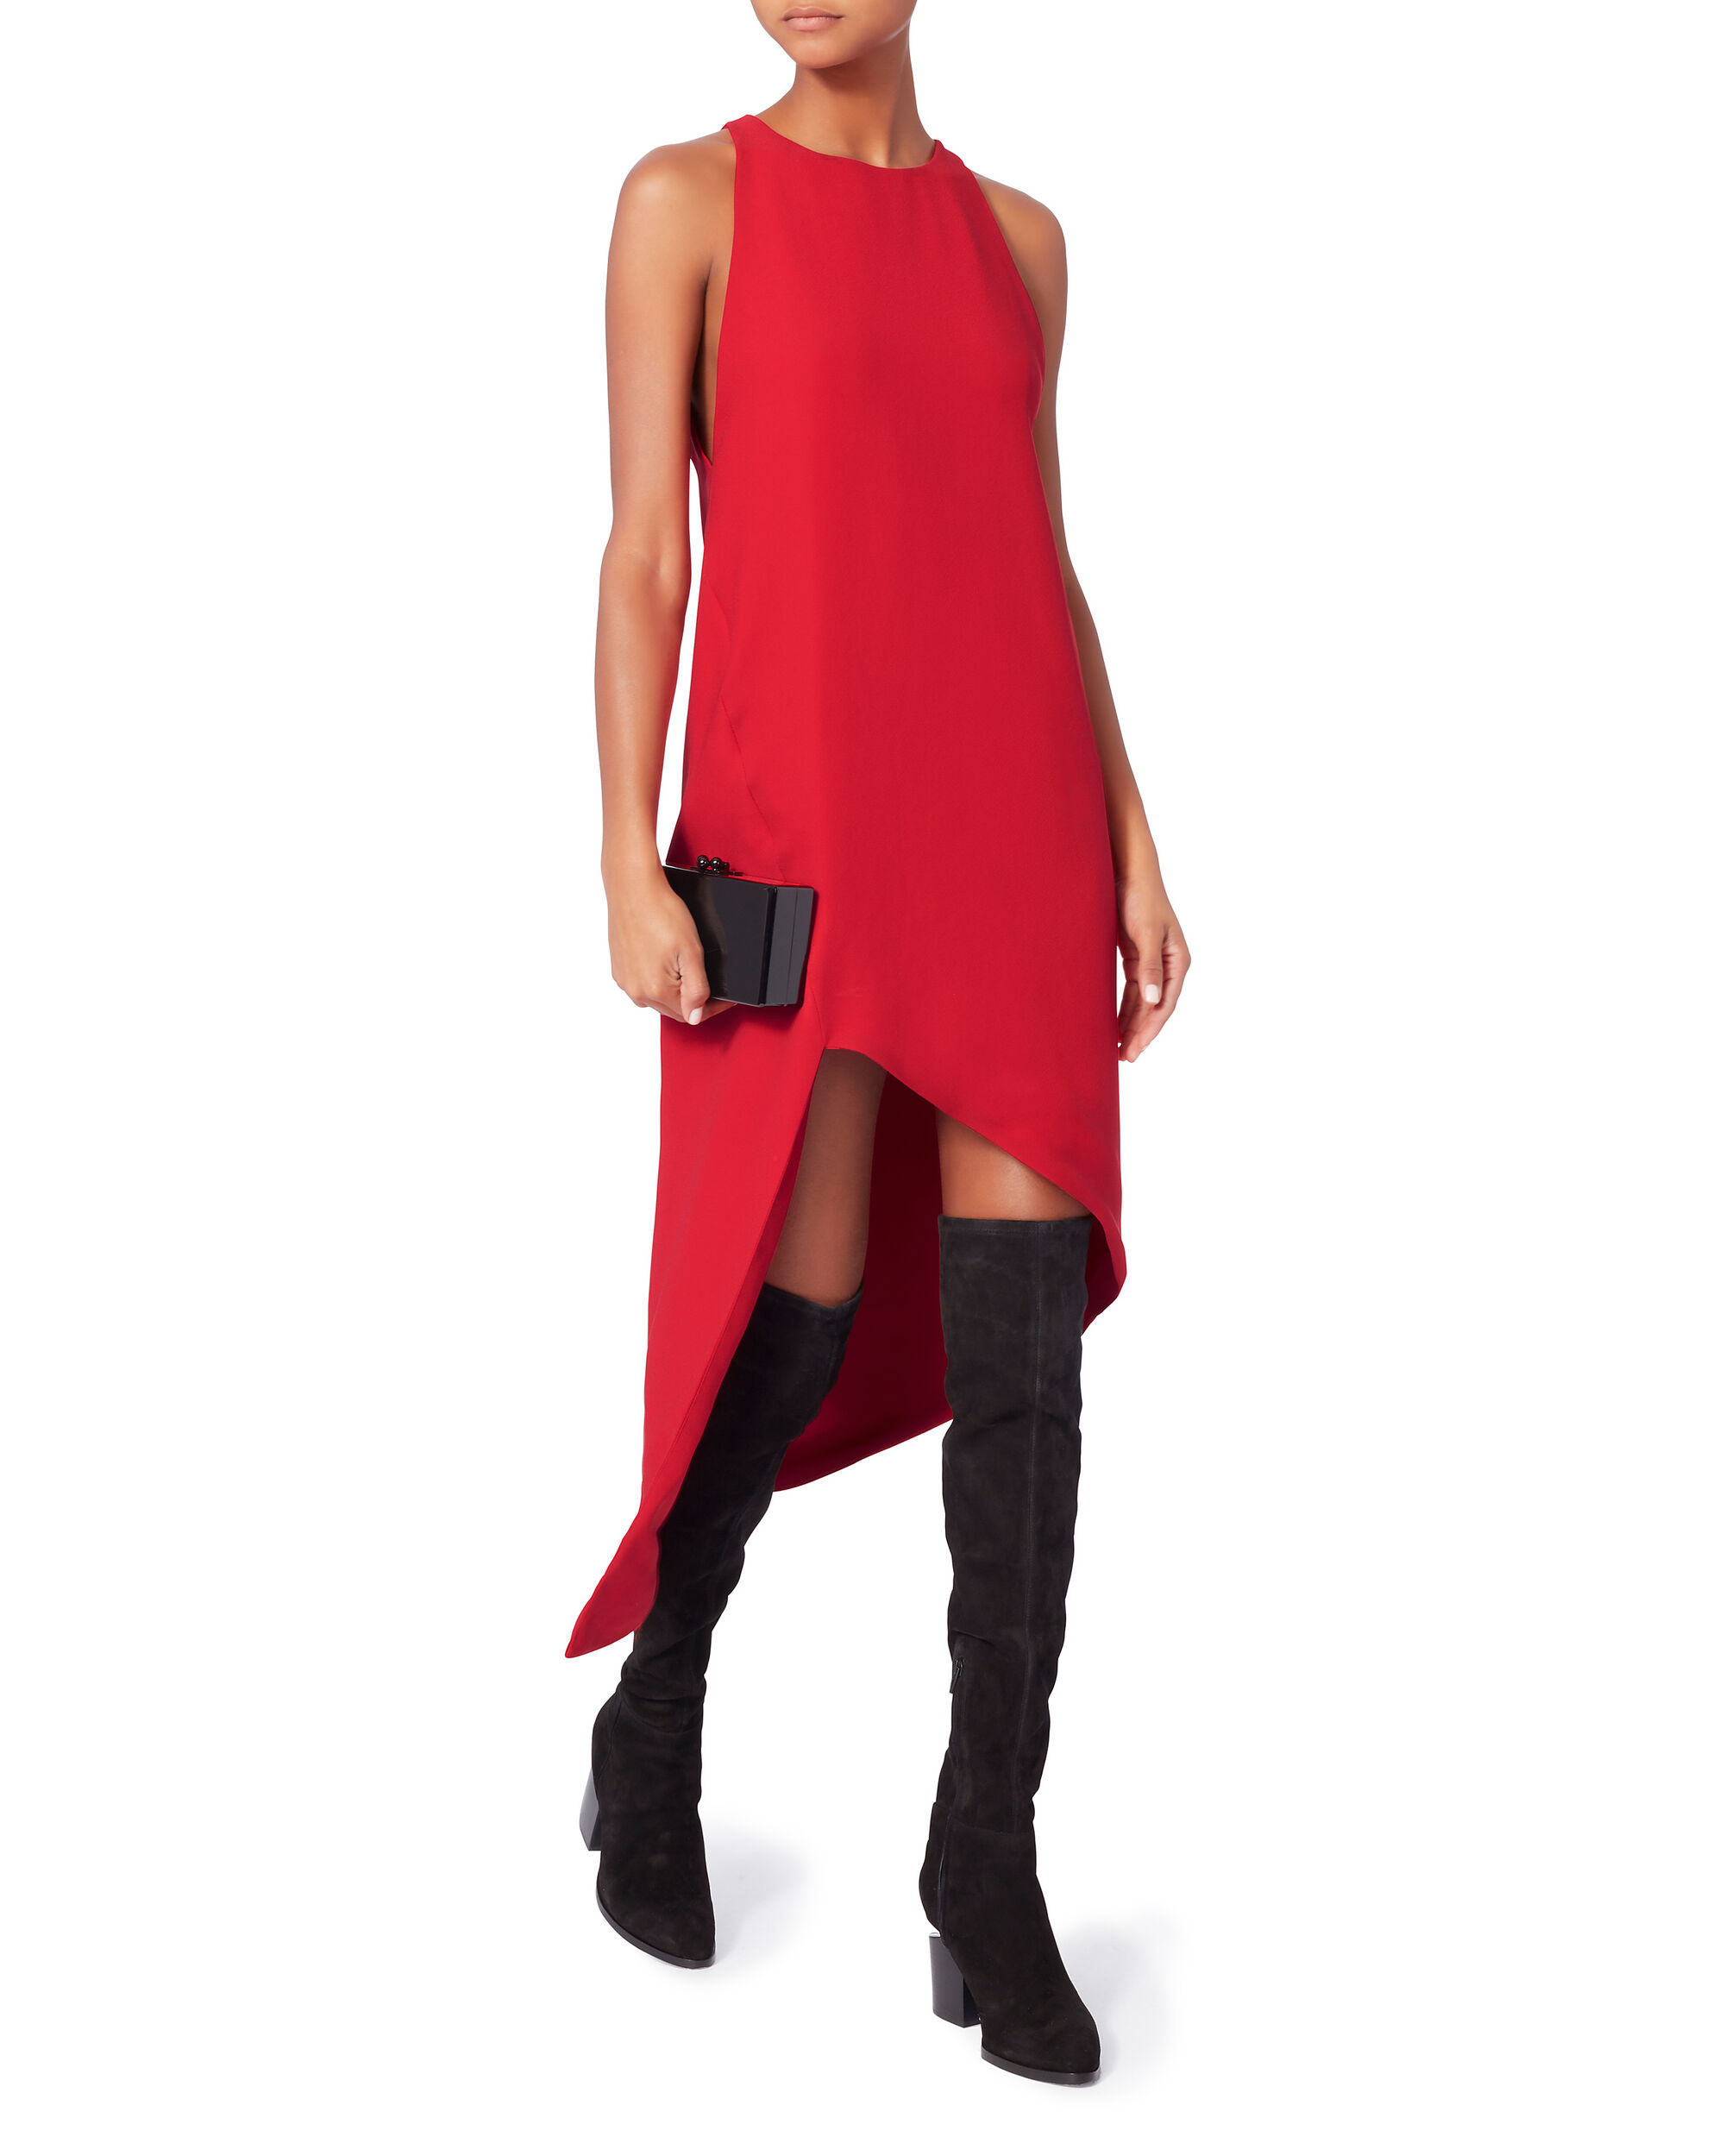 Hamlin Red Asymmetrical Dress, RED, hi-res